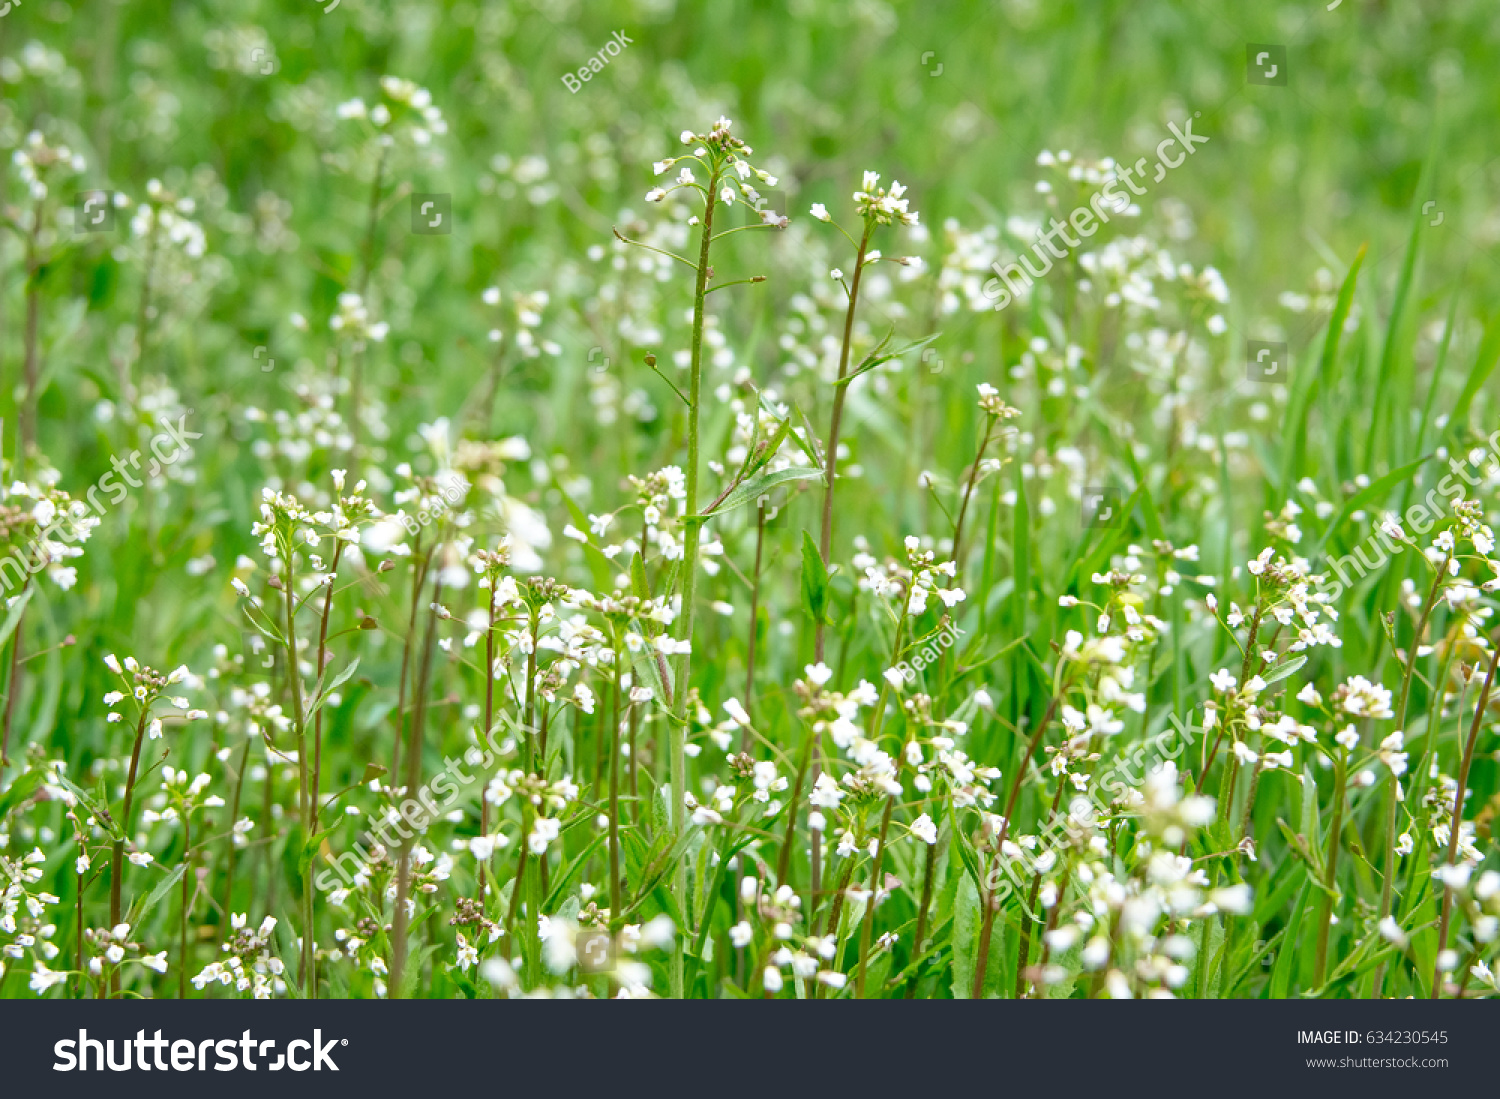 White Flowers In The Grass Ez Canvas